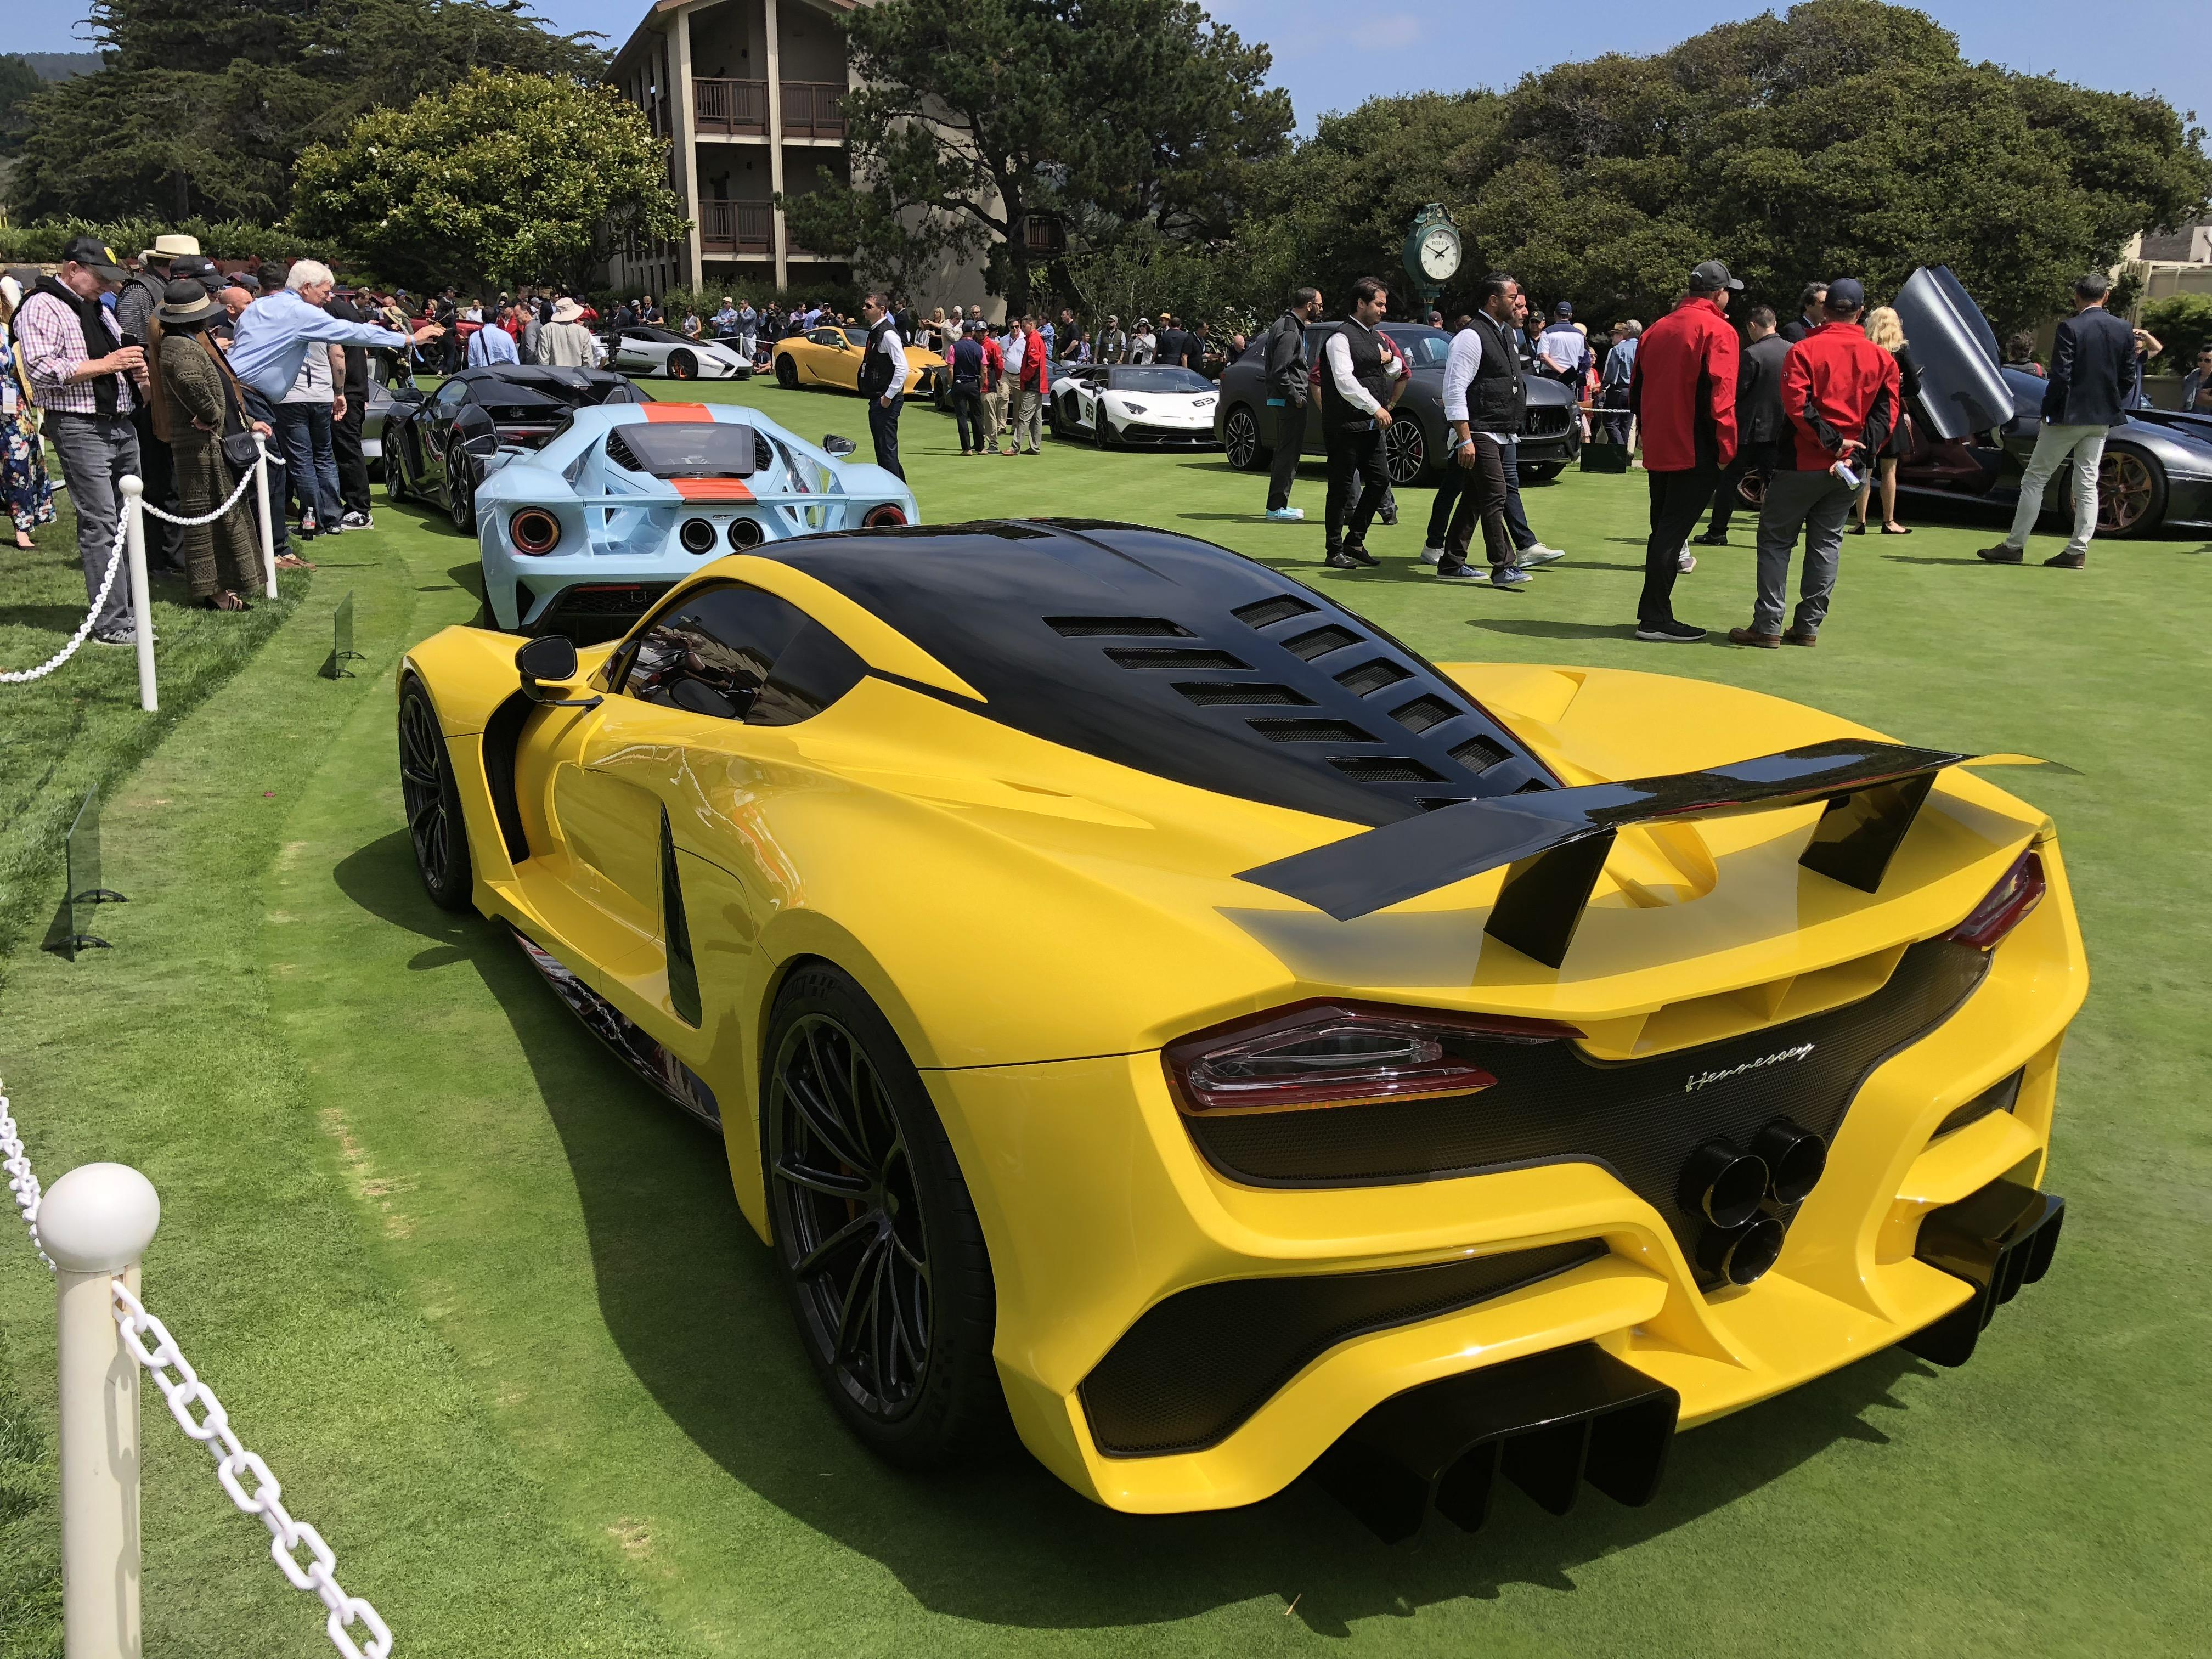 2018 Hennessey Venom F5 The Hennessey Venom F5 On The Concept Lawn At Car Week 2018 Autos